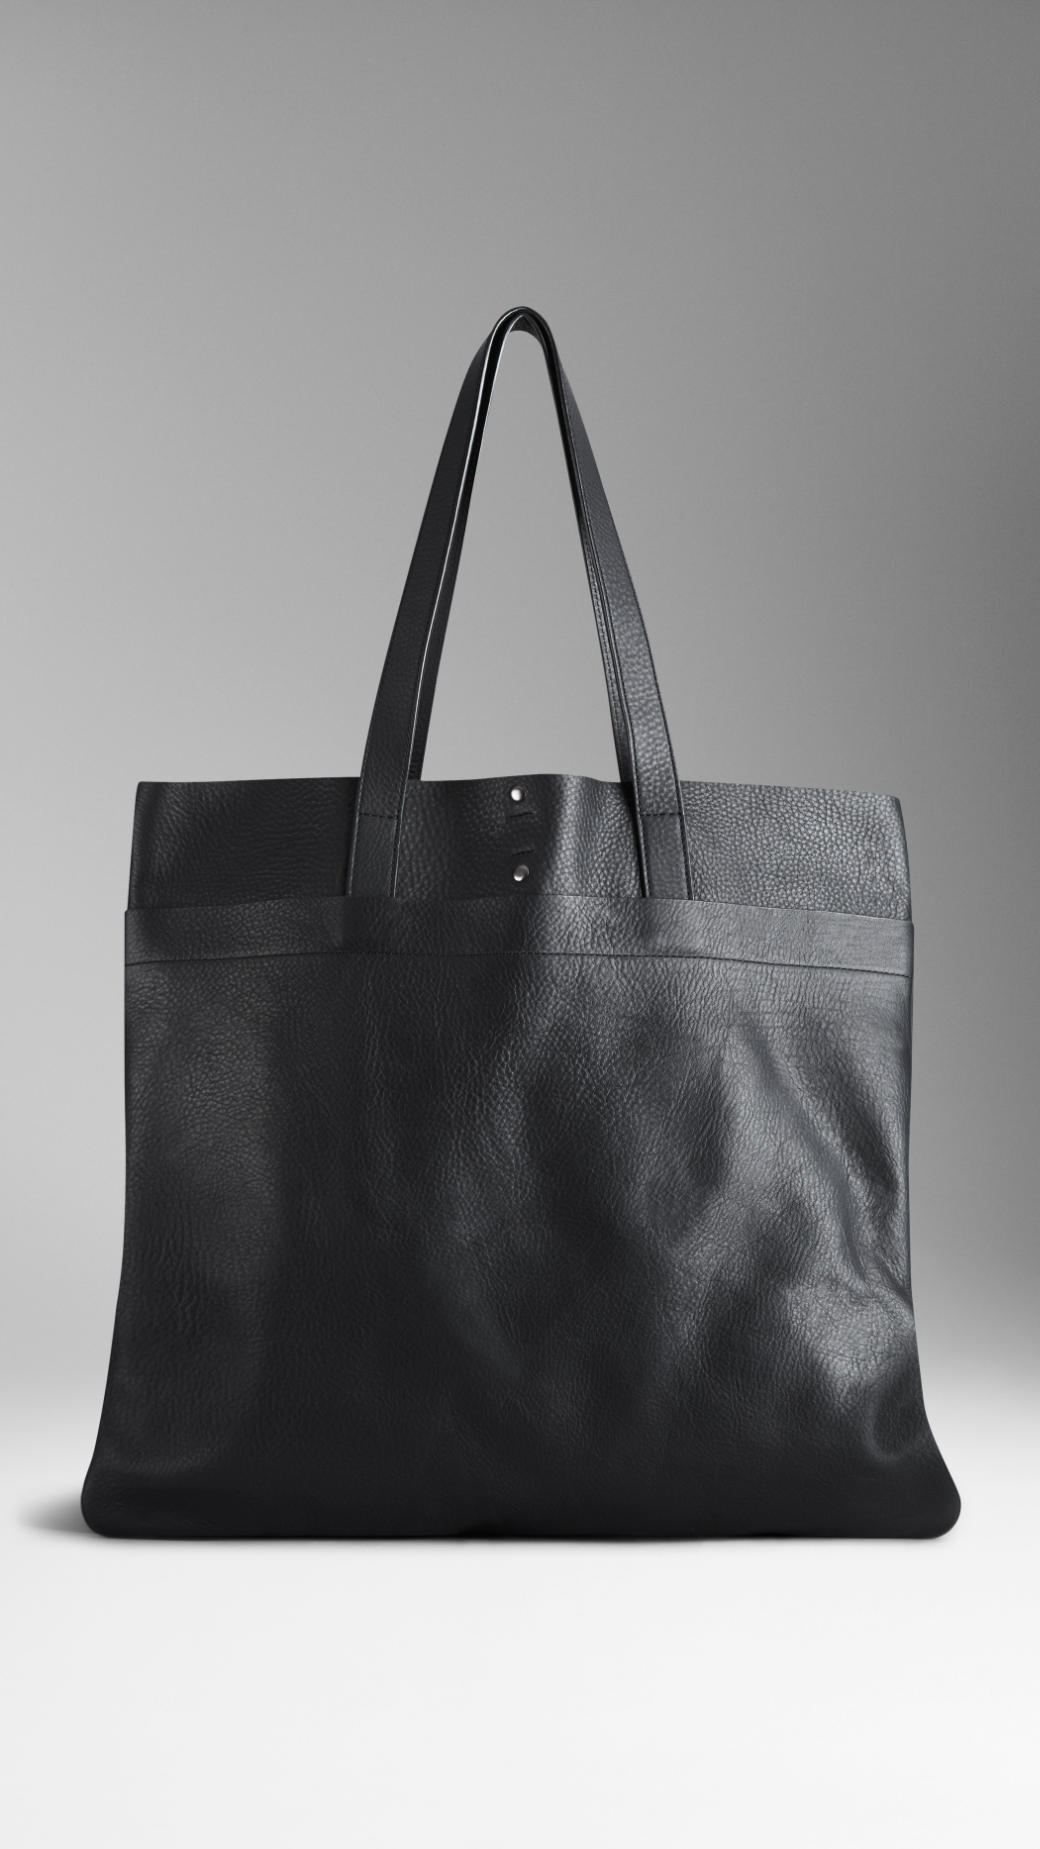 a78f35983be2 Burberry Textured Leather Tote Bag in Black for Men - Lyst